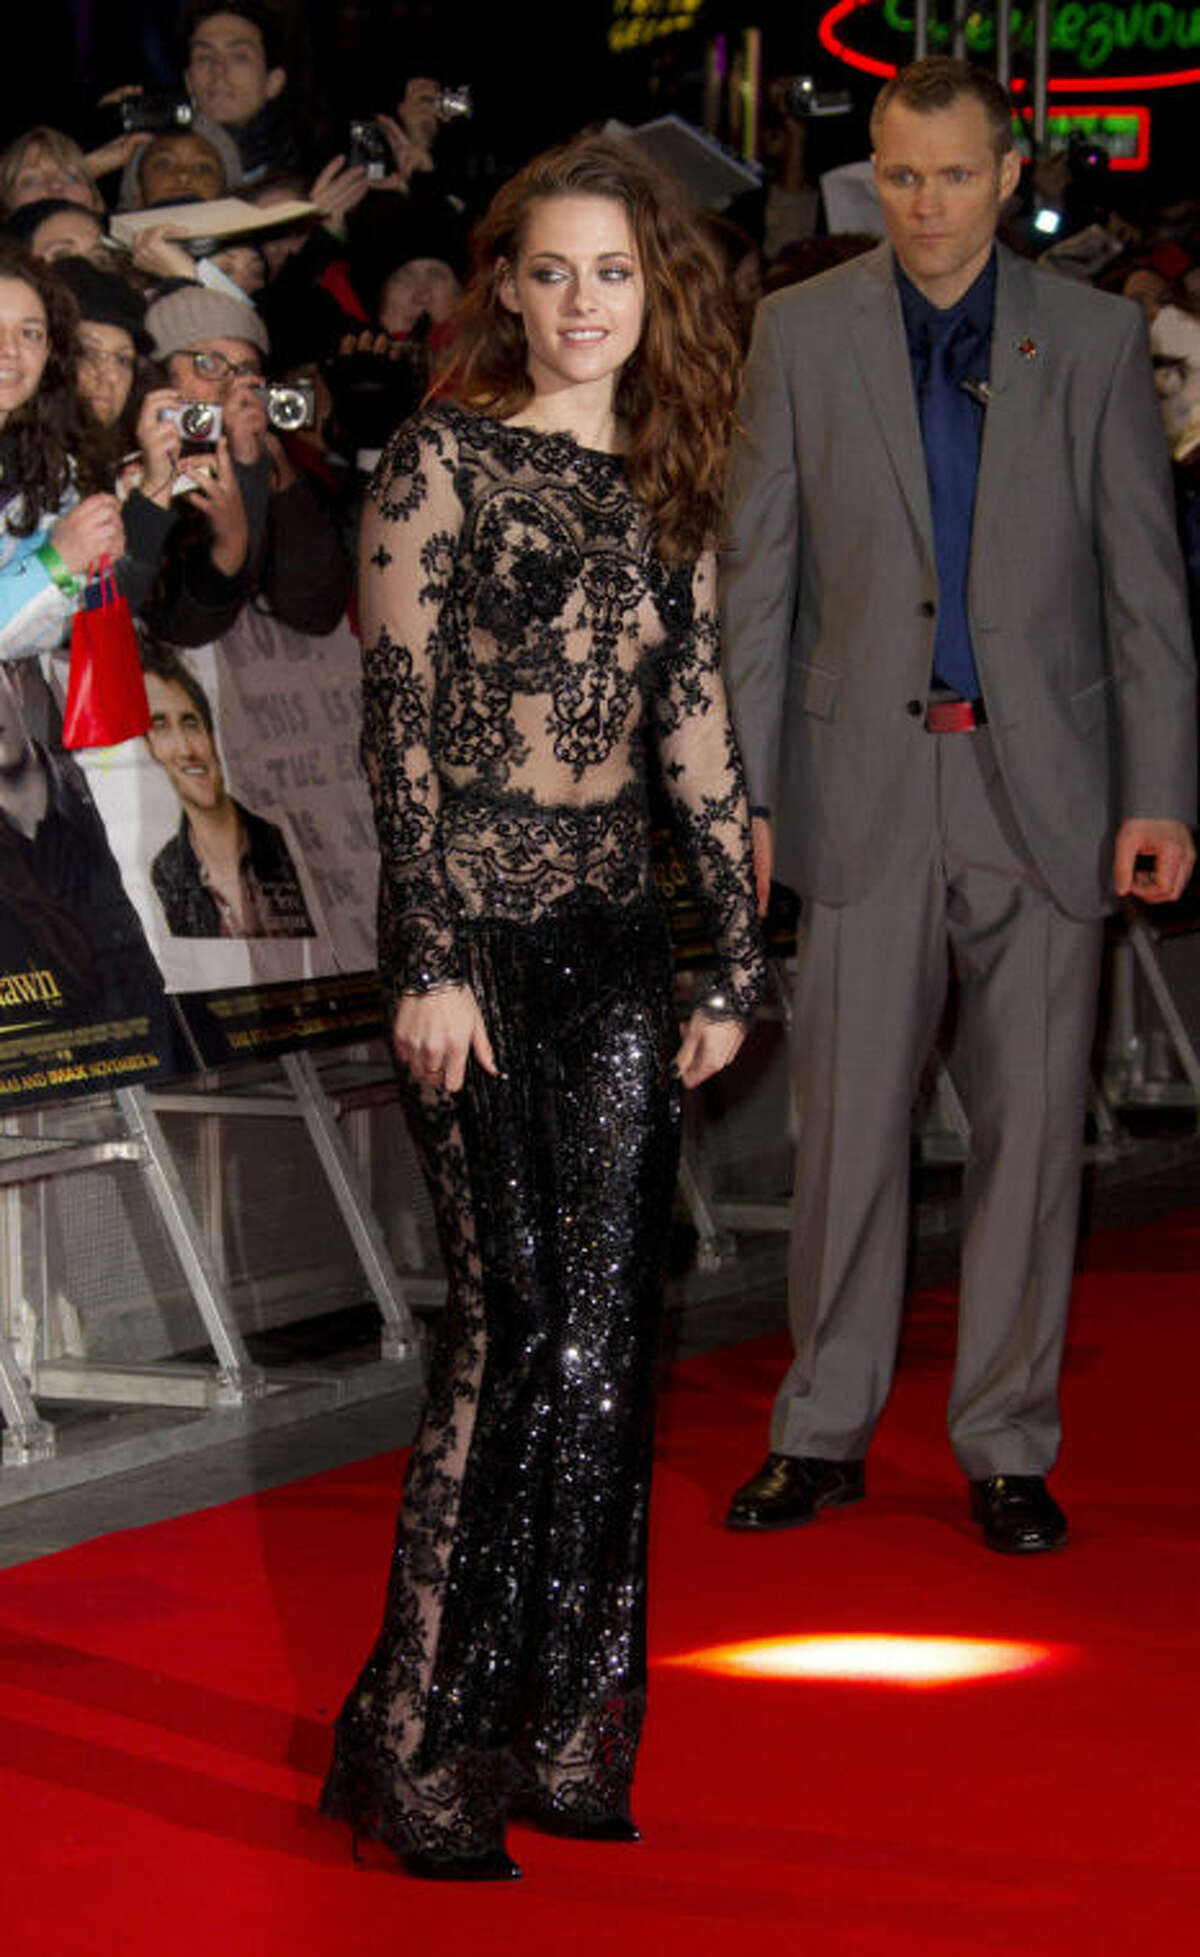 FILE - This Nov. 14, 2012 file photo shows actress Kristen Stewart in a gown by Zuhair Murad at the European premiere of